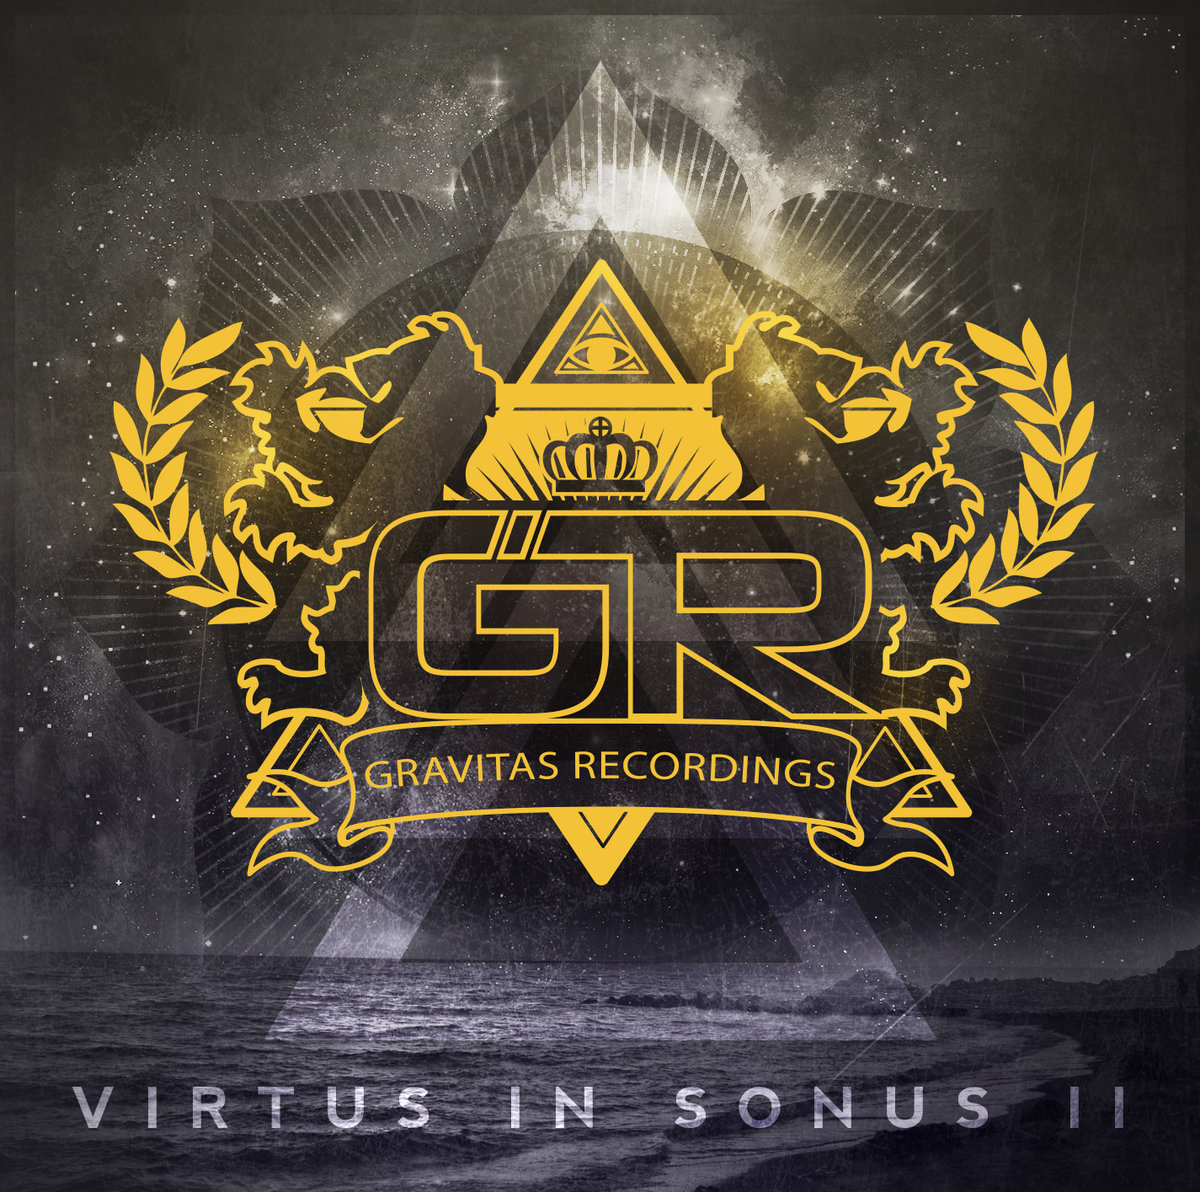 Sonic Geometry - Rollin @ 'Virtus In Sonus II' album (Austin)